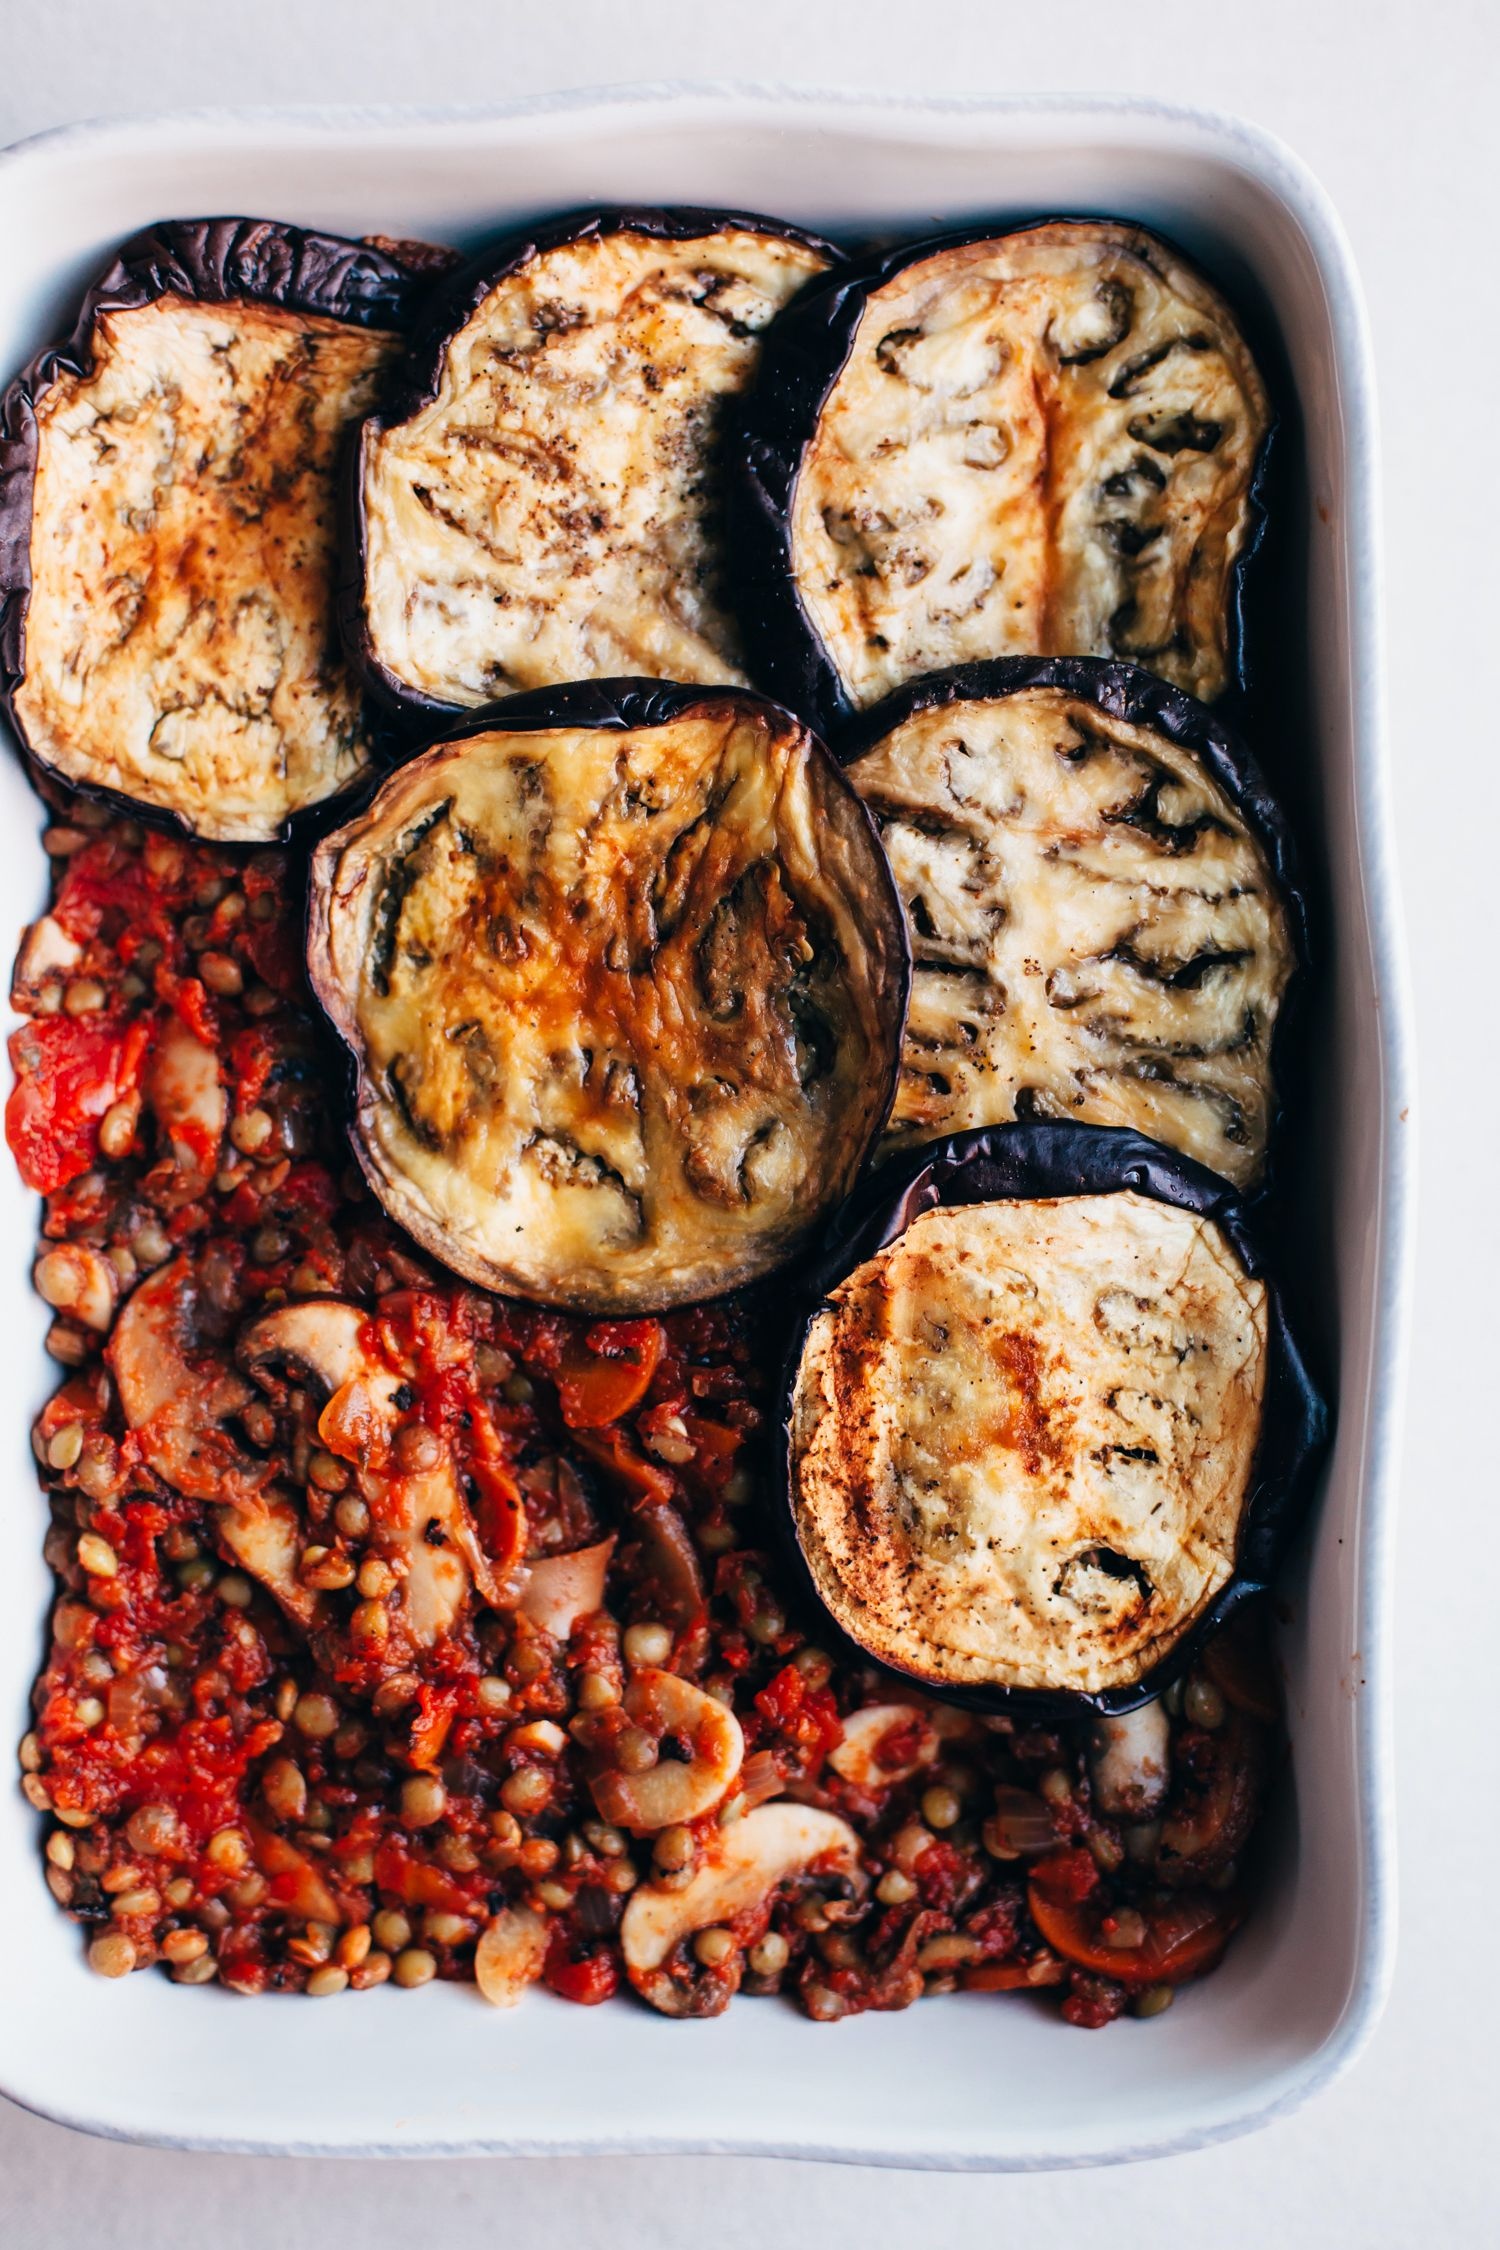 Vegan Lentil Moussaka Golubka Kitchen Recipe Vegan Moussaka Lentils Food